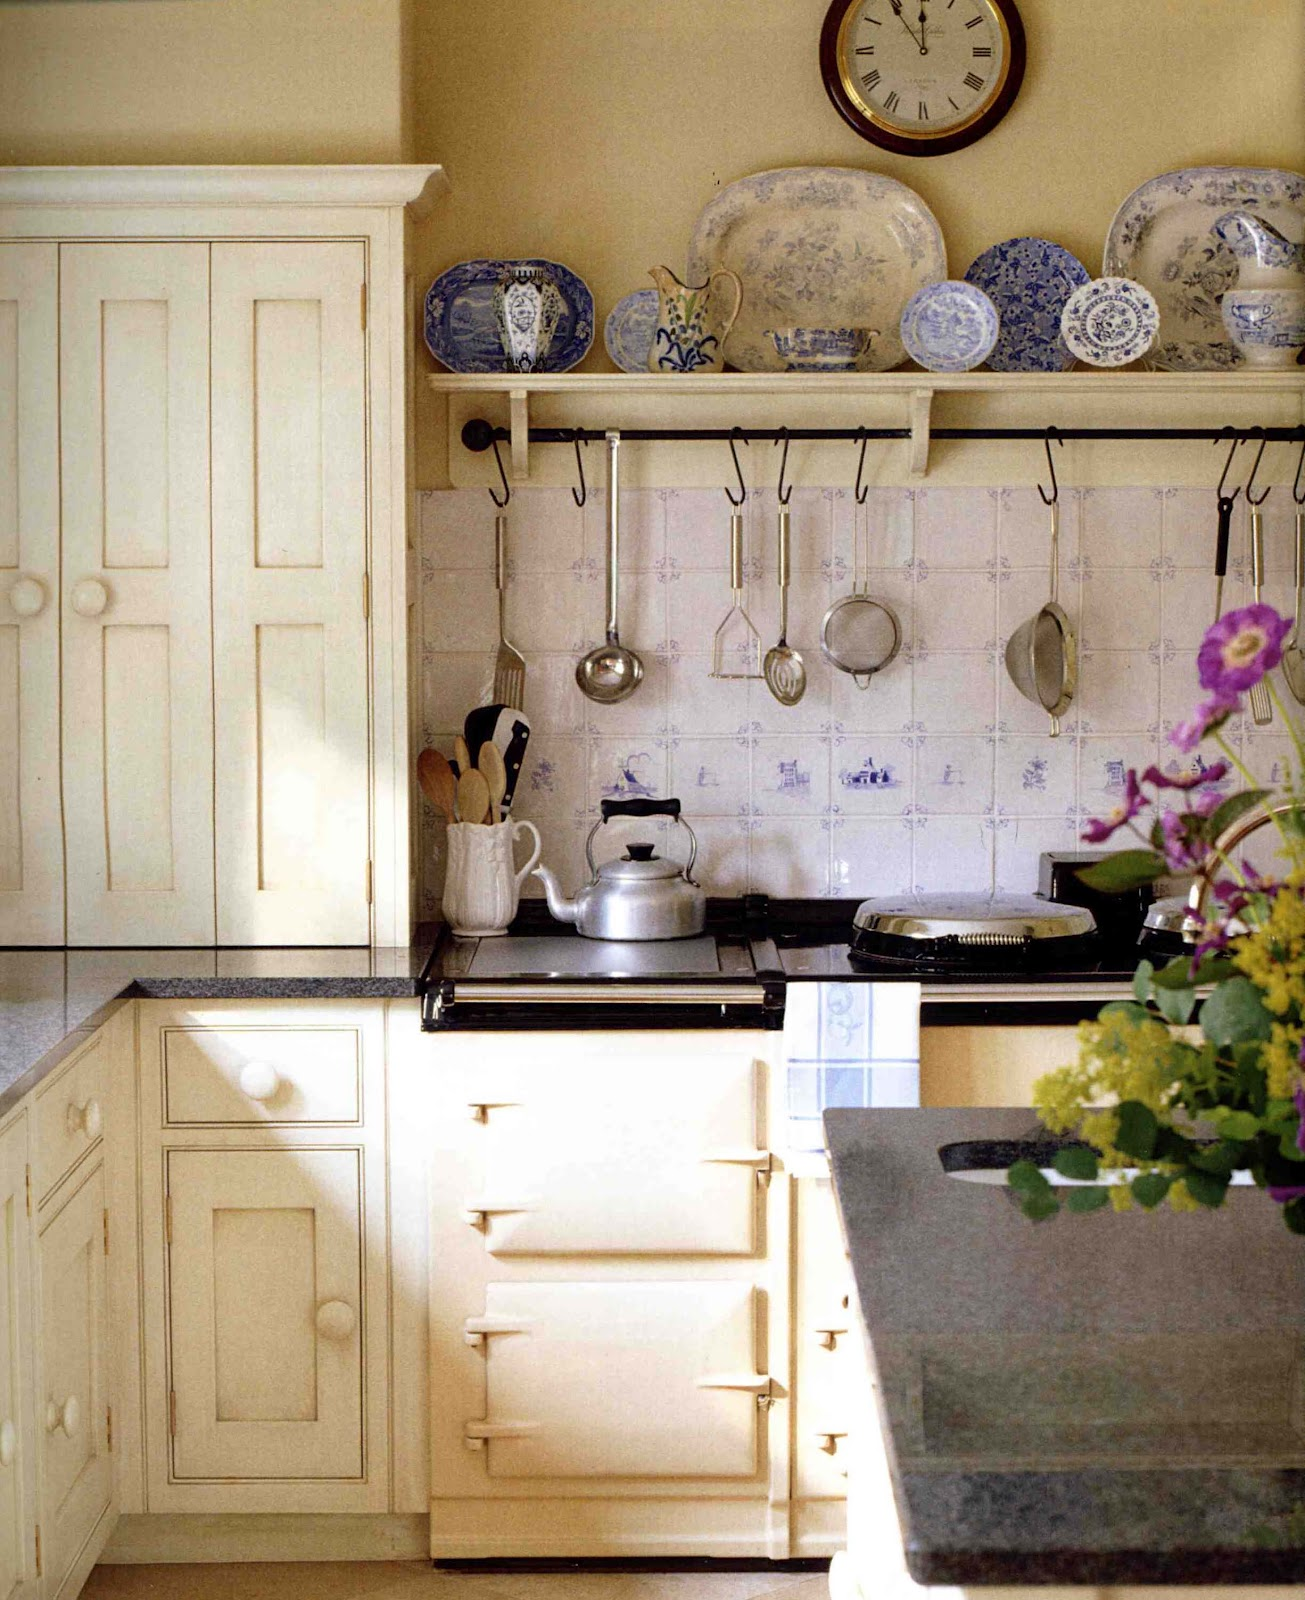 Beautiful Country Kitchen Pictures Photos And Images For Facebook Tumblr Pinterest And Twitter: Donna's Art At Mourning Dove Cottage: English Country Charm